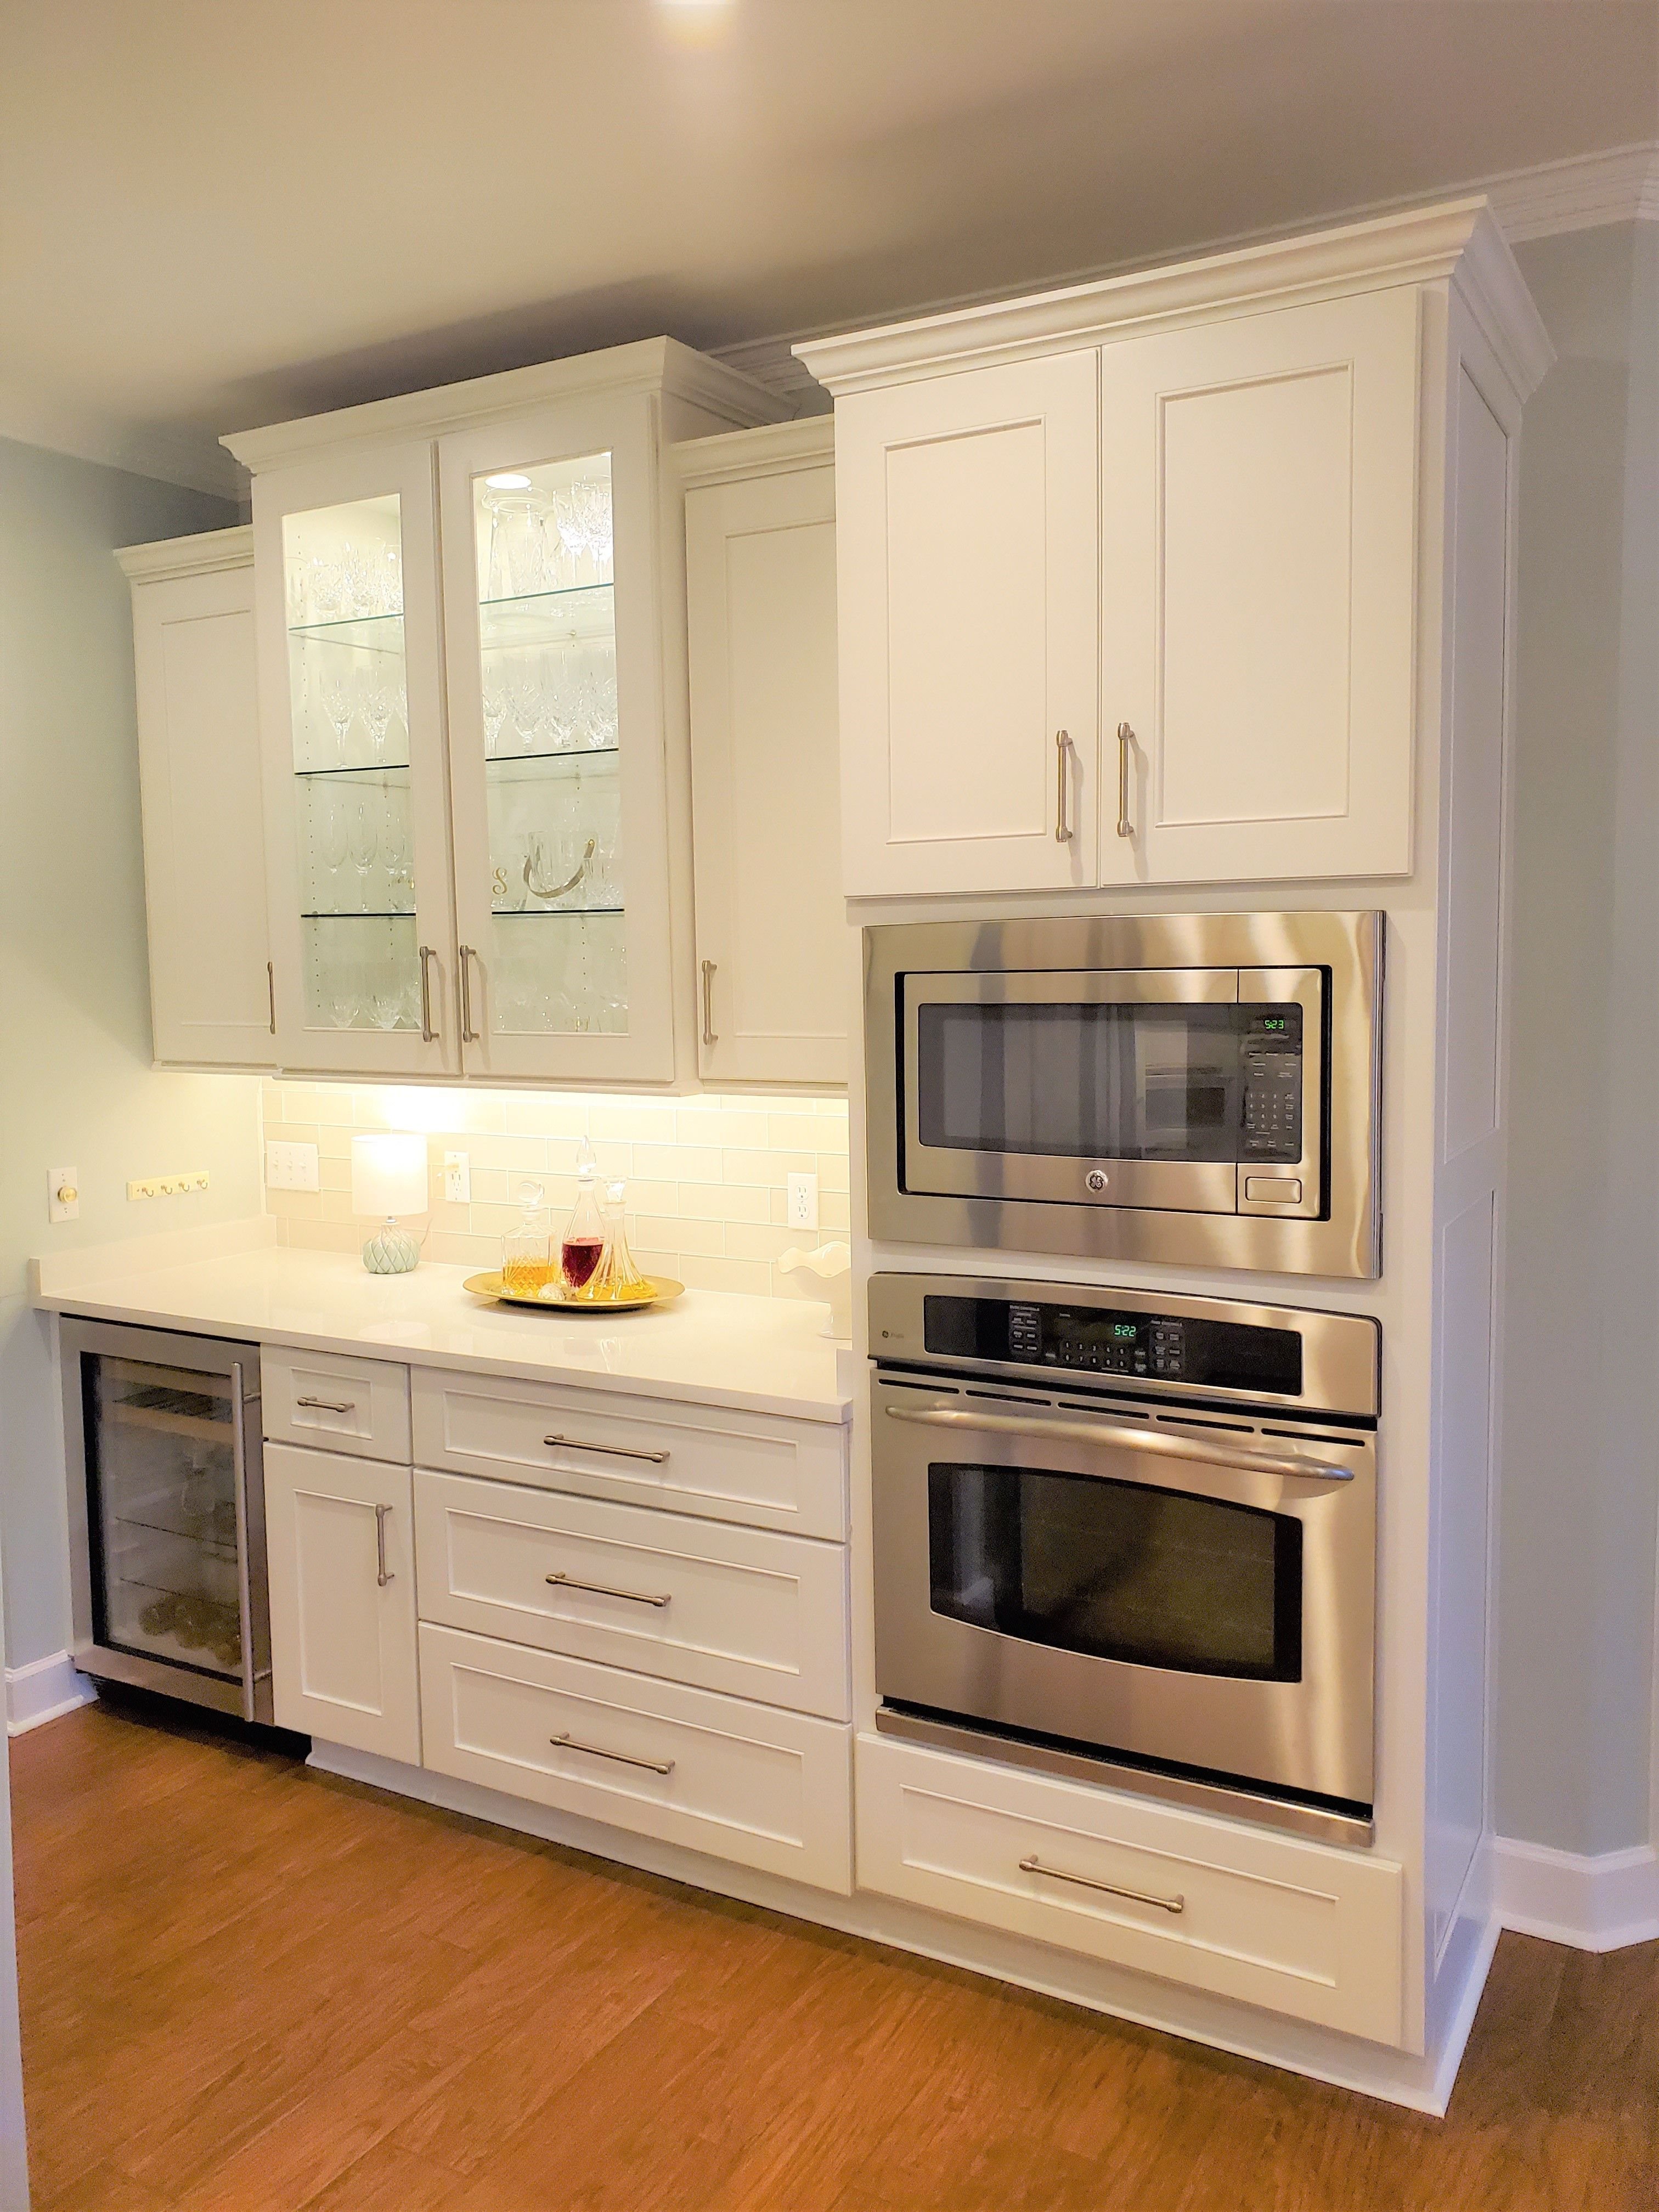 Kitchen Tune Up Savannah Brunswick New Cabinets In 2020 Custom Cabinets Cabinet Kitchen Remodel